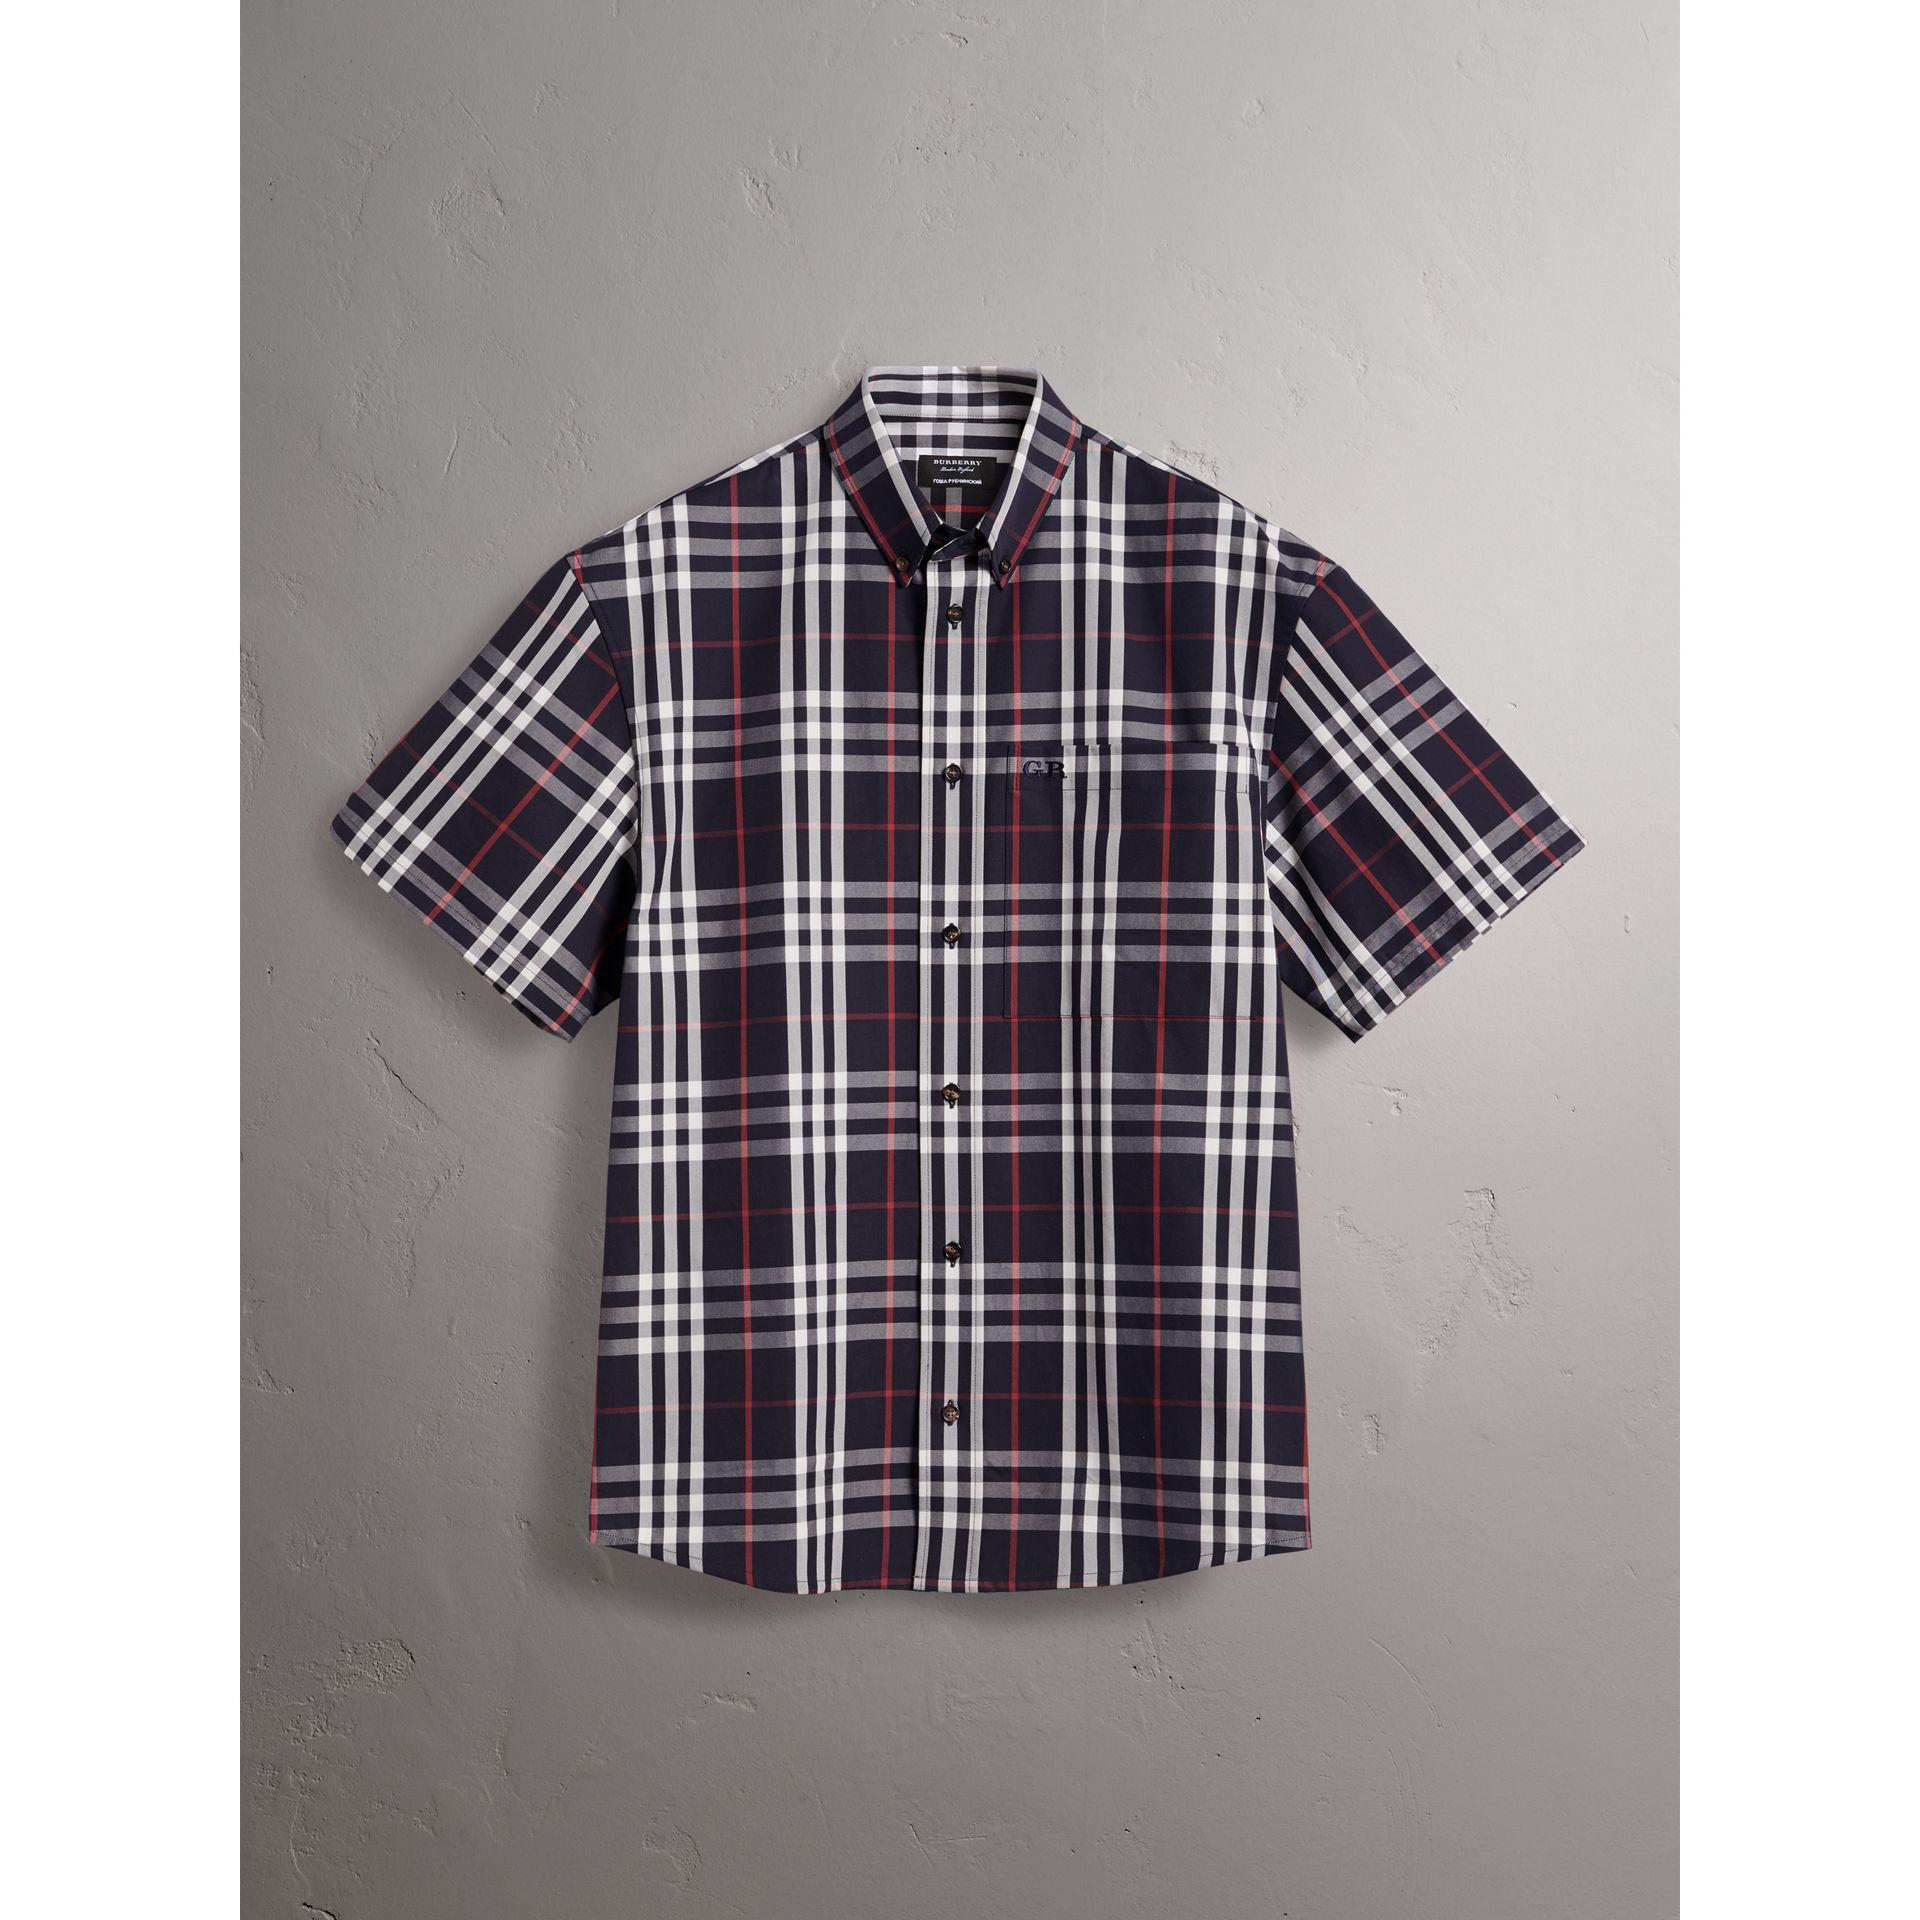 Gosha x Burberry Short-sleeve Check Shirt in Navy | Burberry Canada - gallery image 4